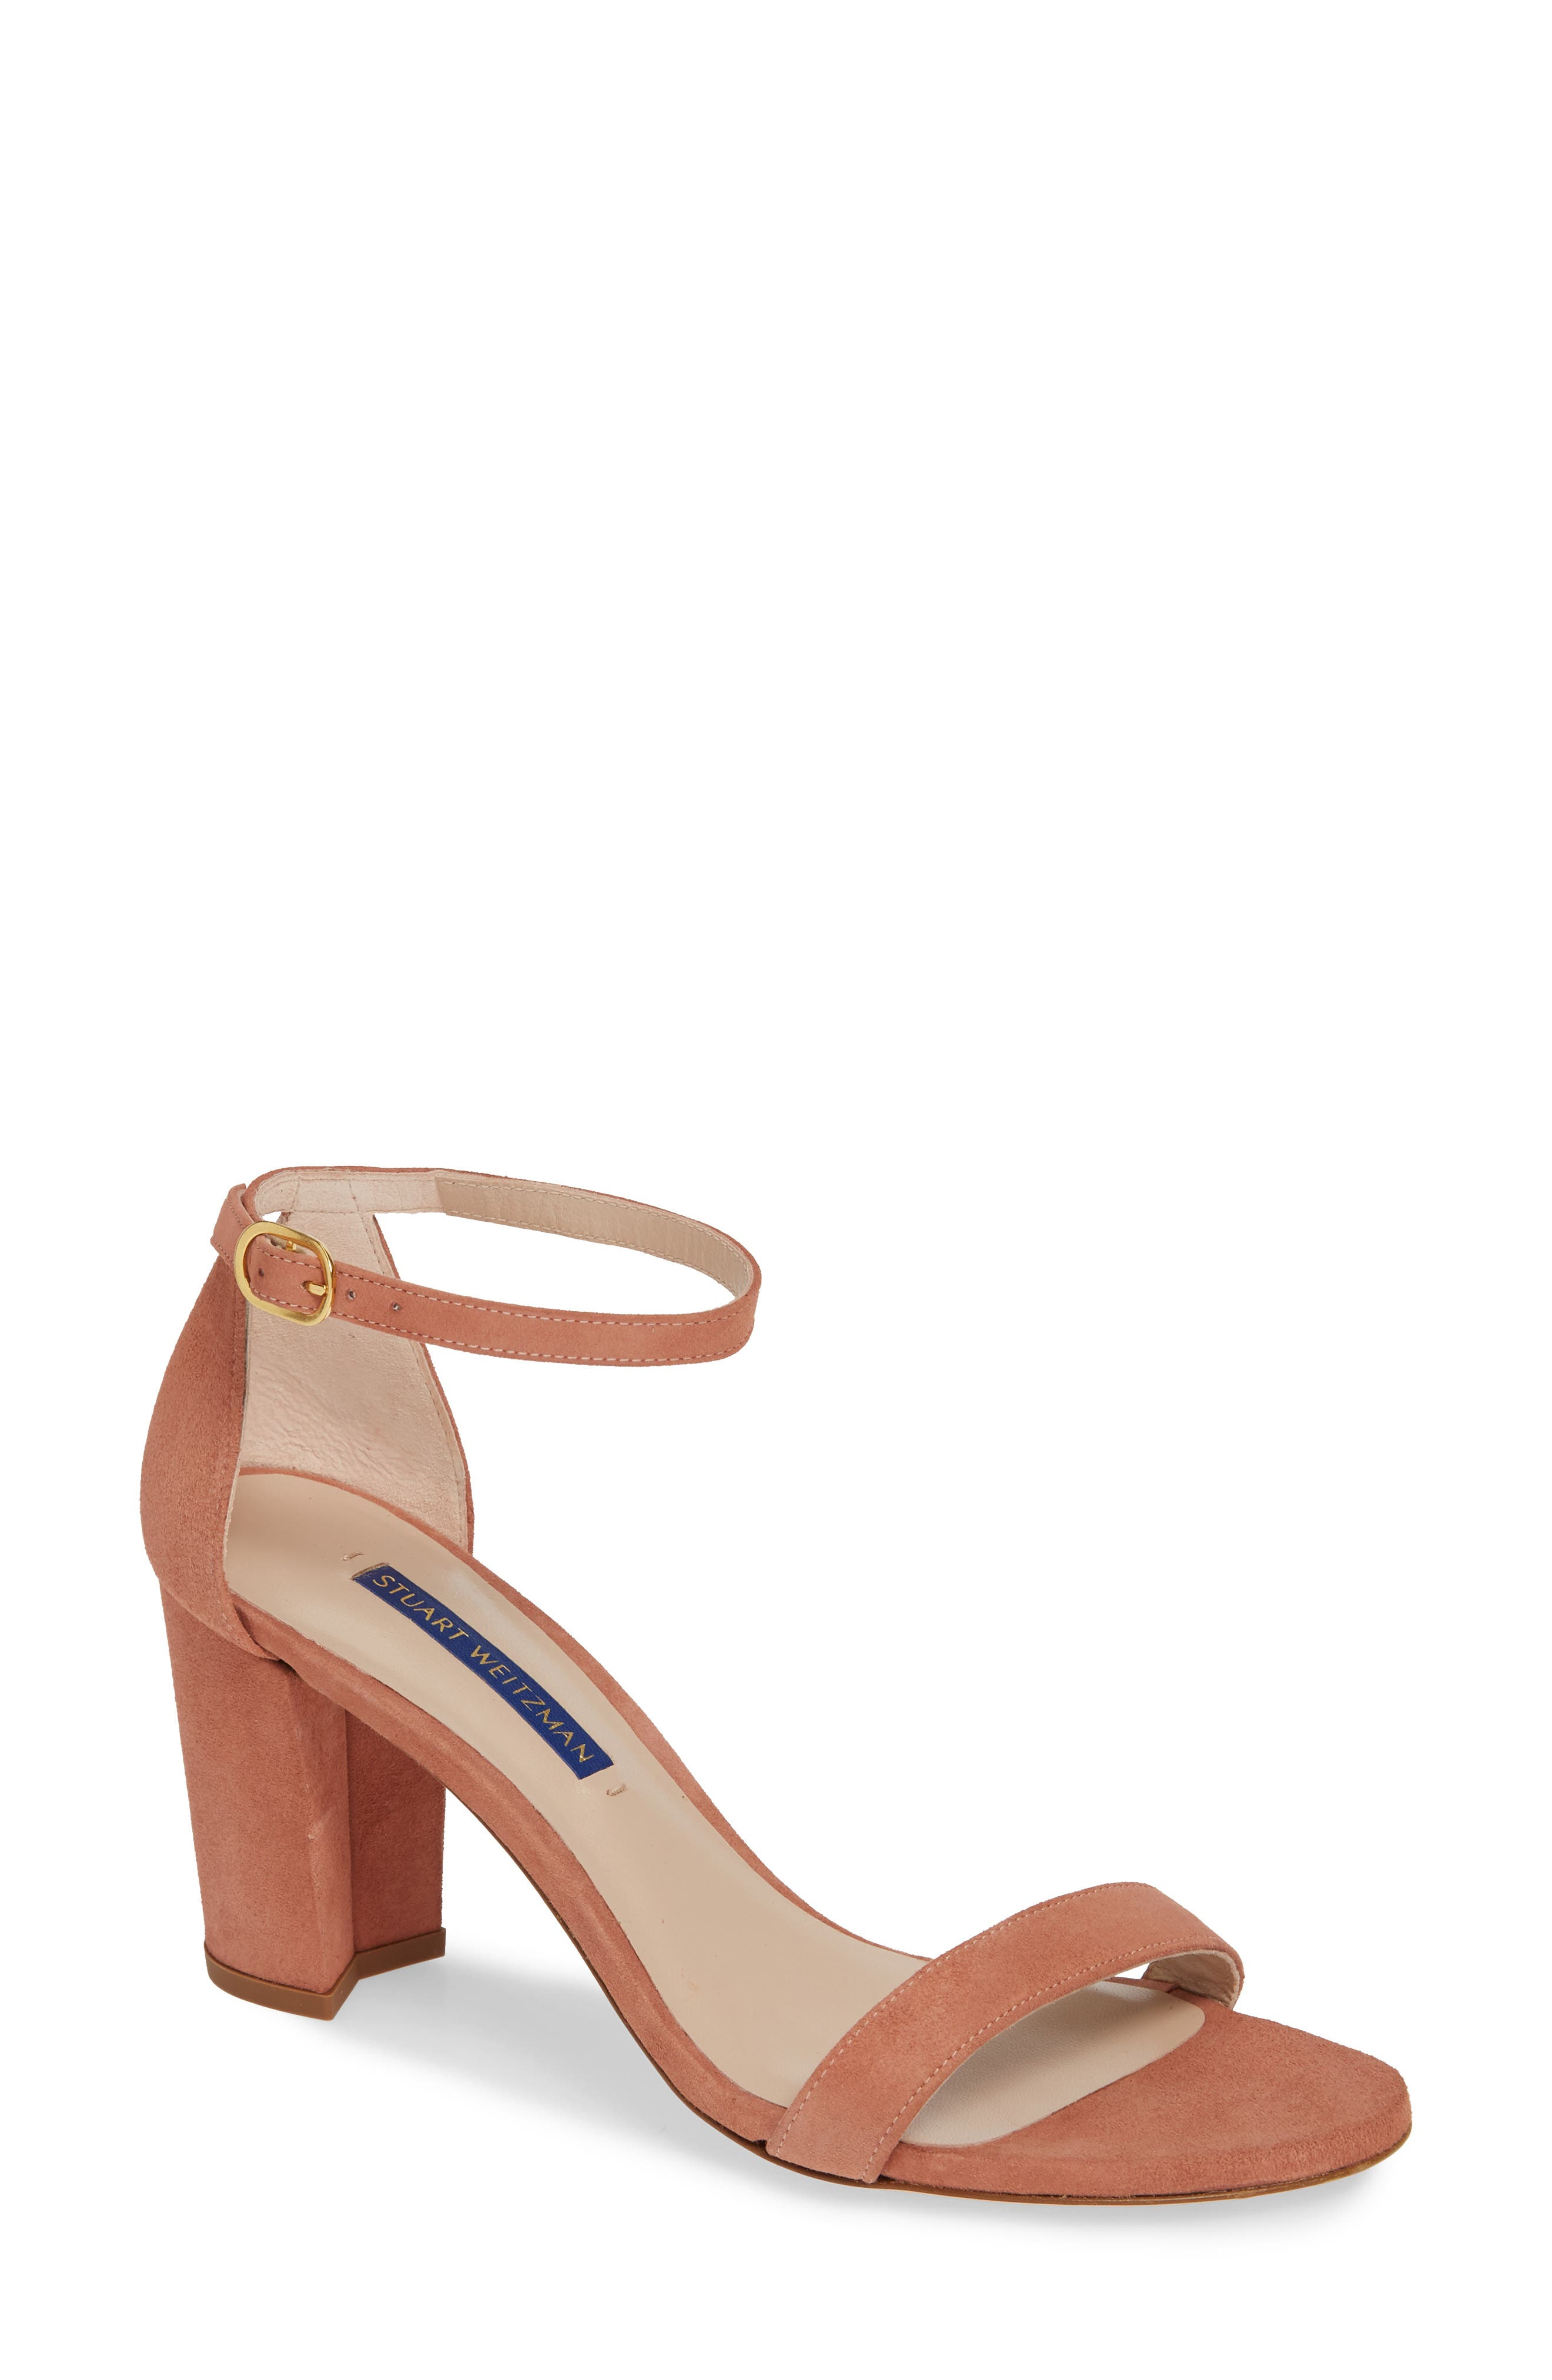 STUART WEITZMAN NearlyNude Ankle Strap Sandal, Main, color, DESERT ROSE SUEDE